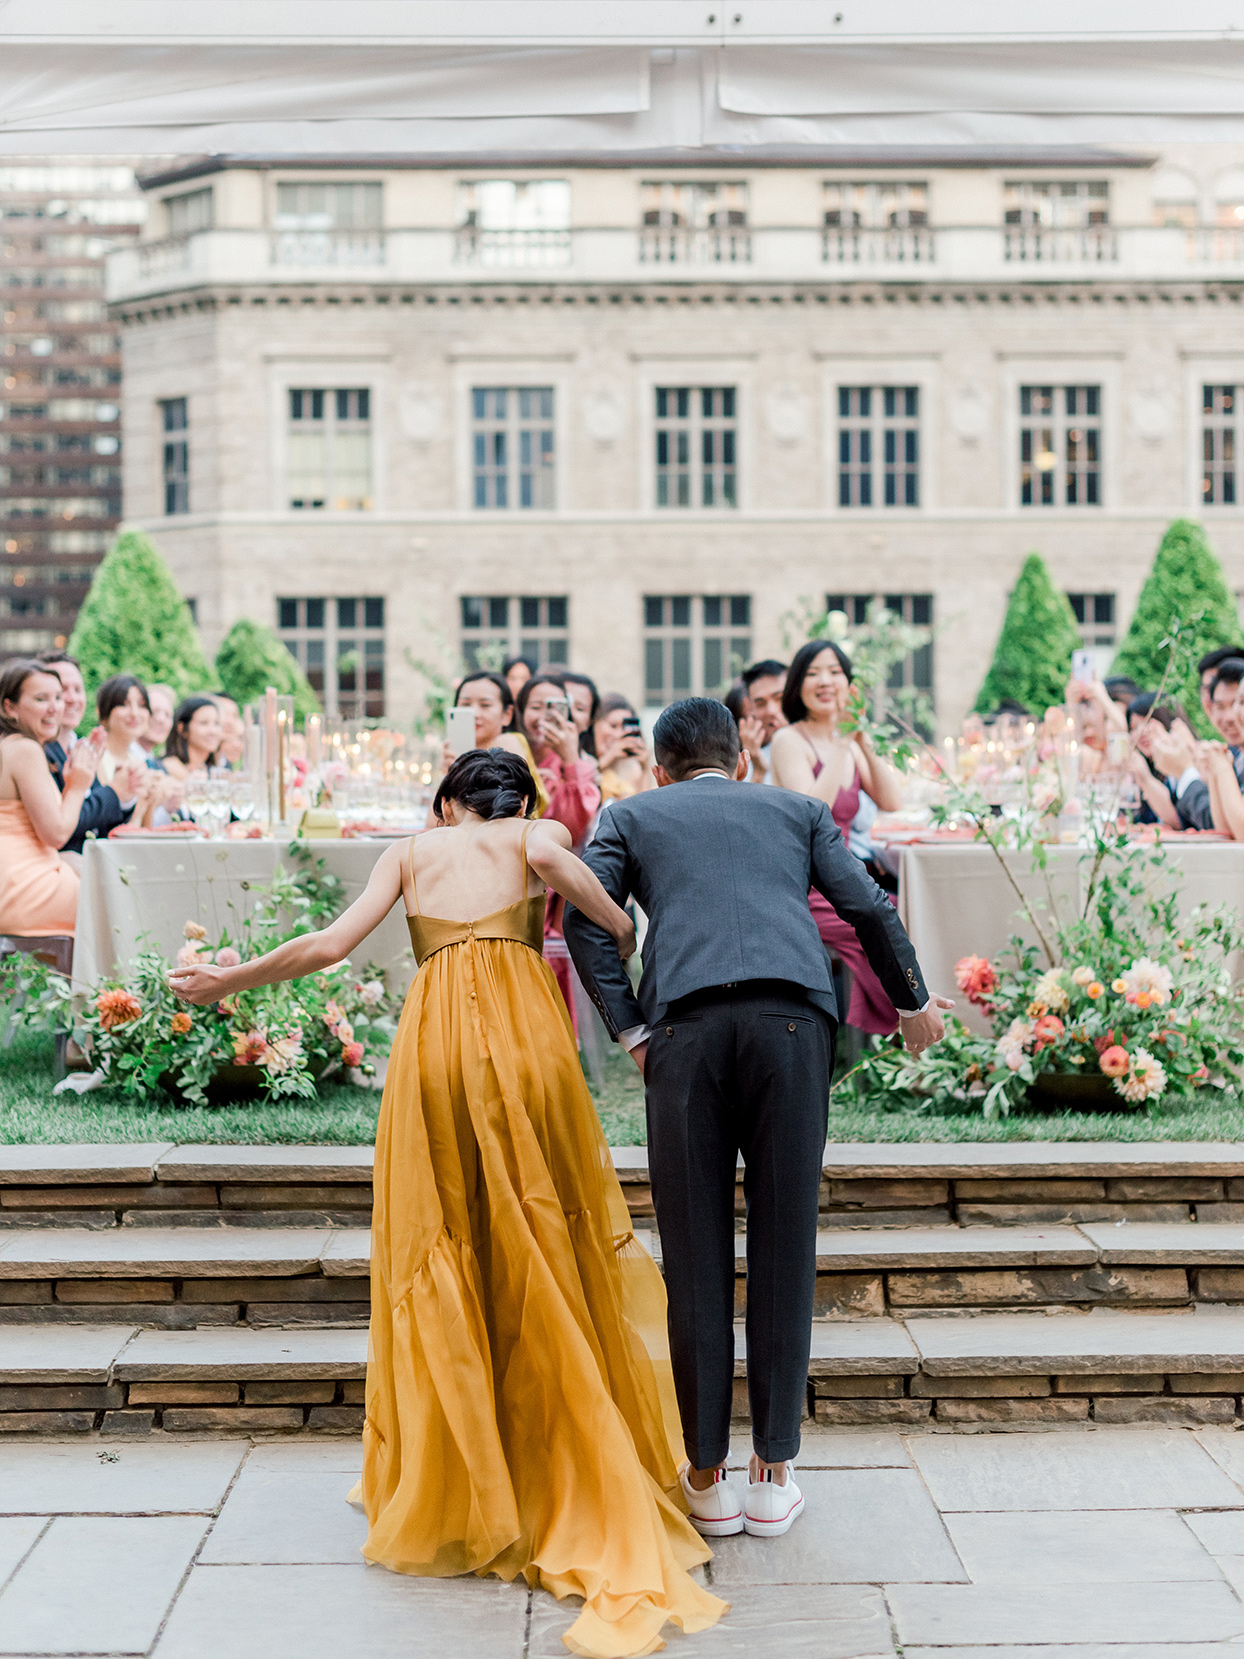 bride and groom bowing to guests in different reception outfits